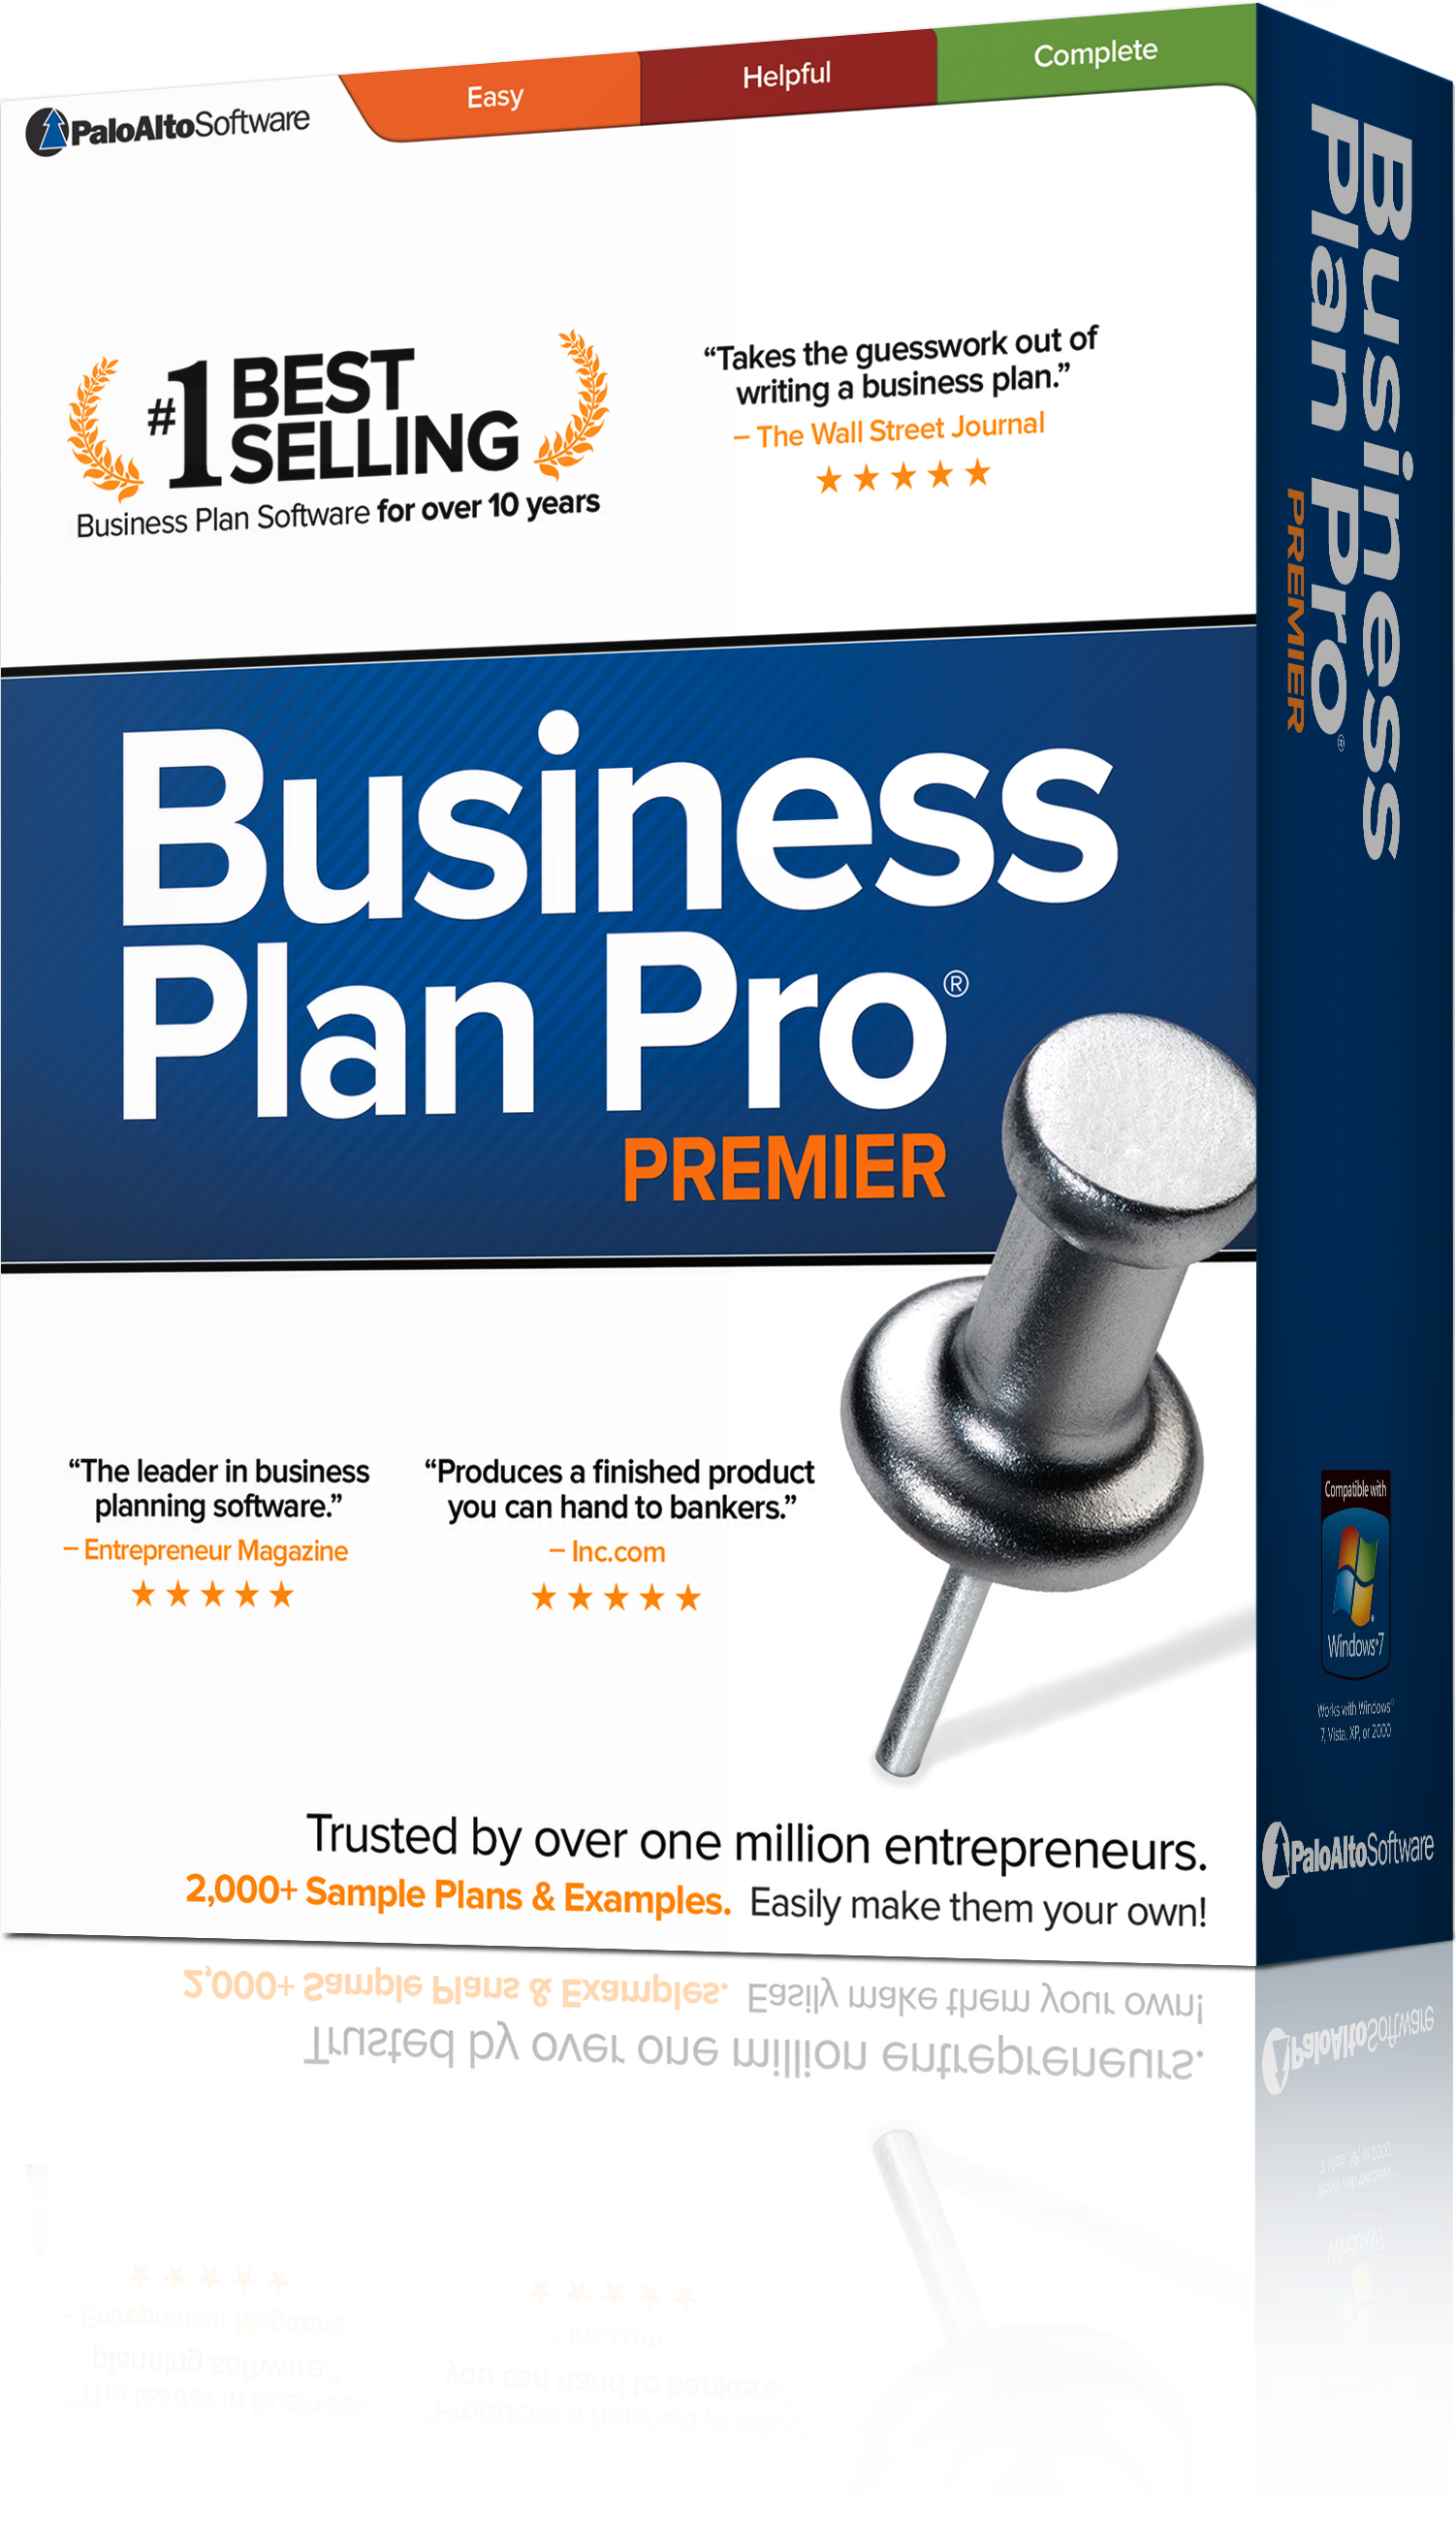 Business plan pro publish your business plan.